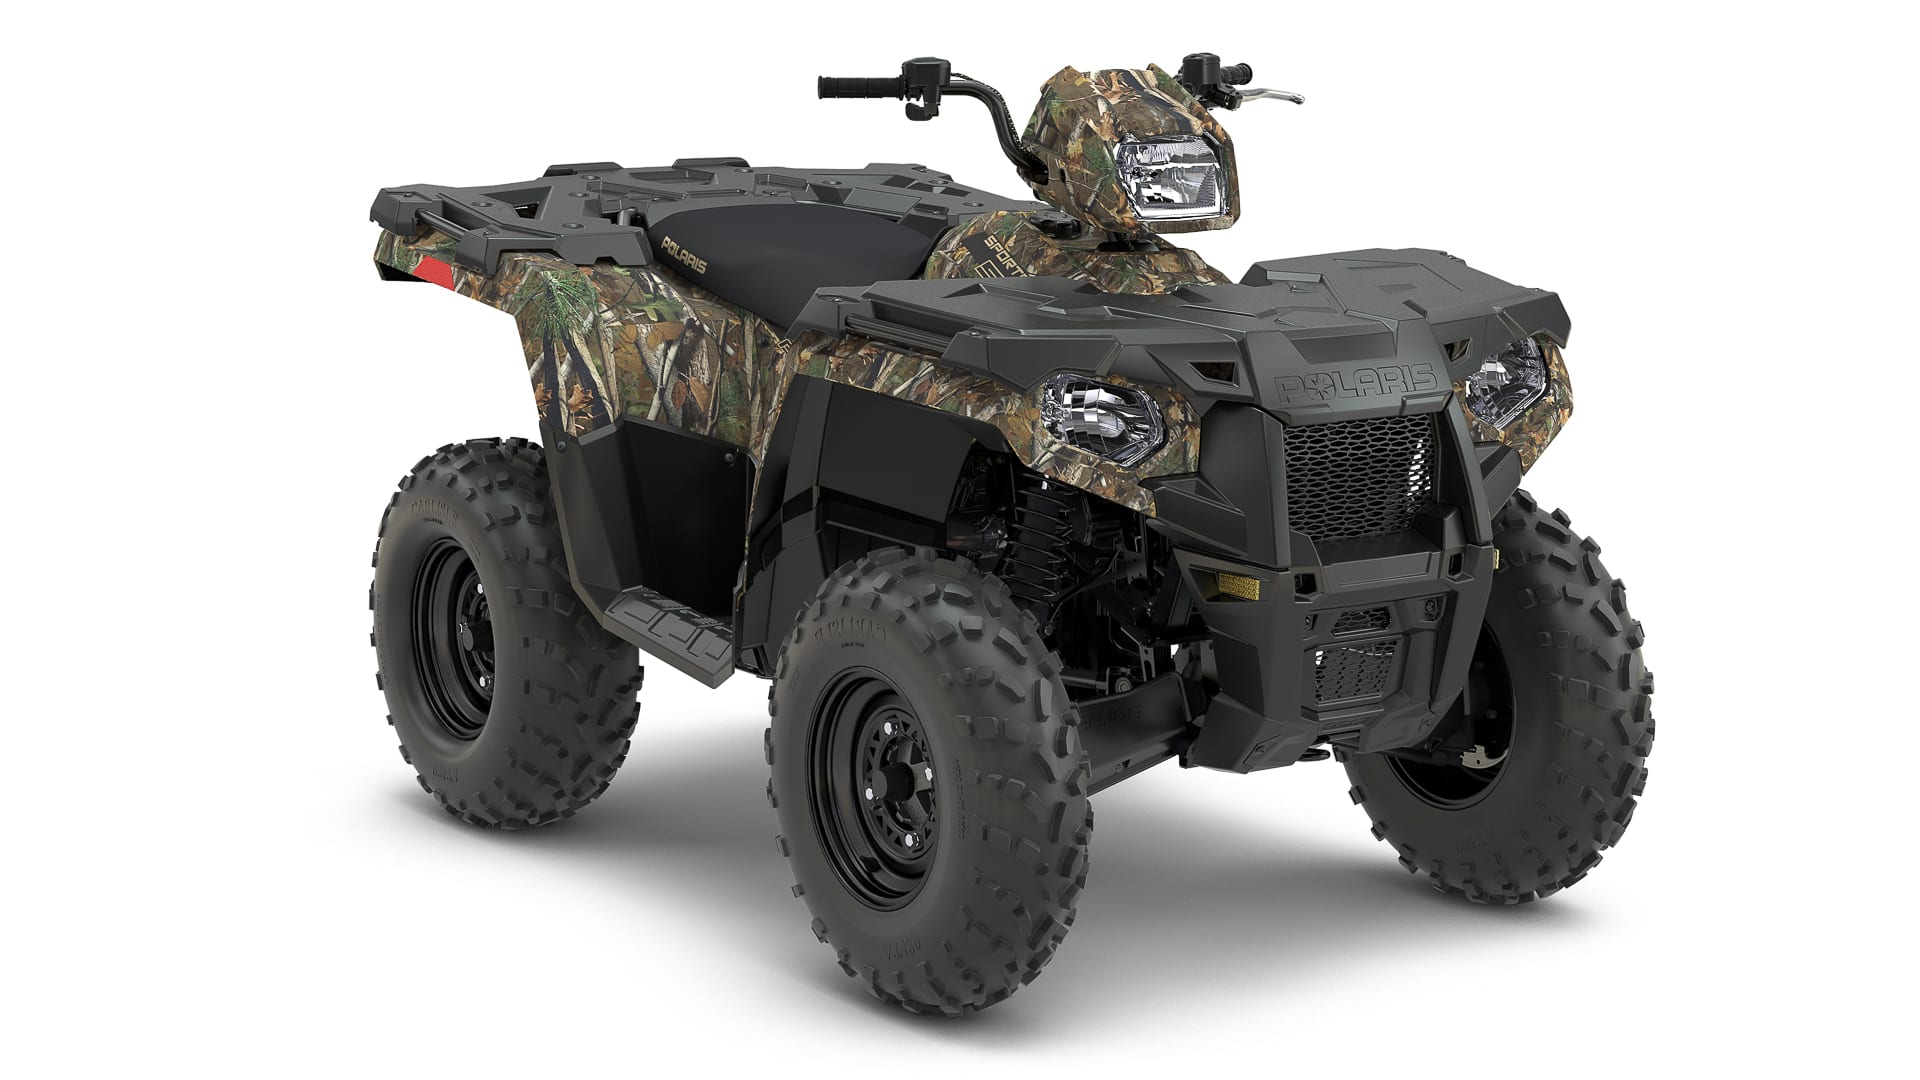 Side By Side Atv >> 2018 Polaris Sportsman ATV Lineup | ATV Trail Rider Magazine